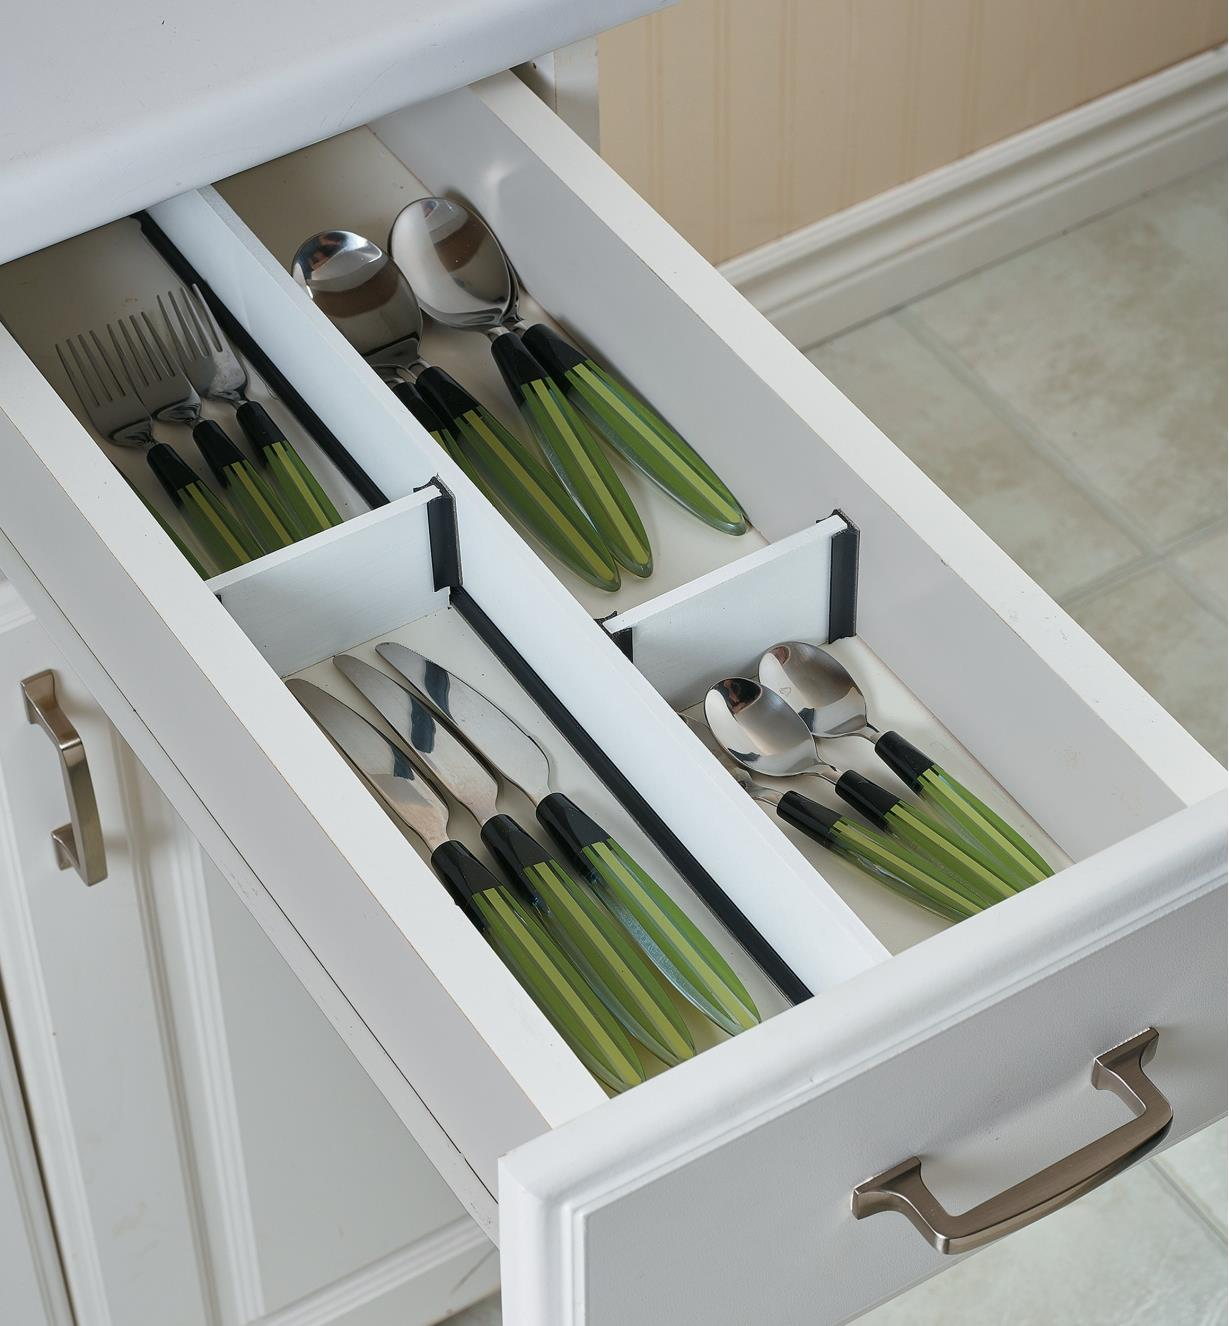 "1/4"" Drawer Divider Extrusions used to install dividers in a cutlery drawer"